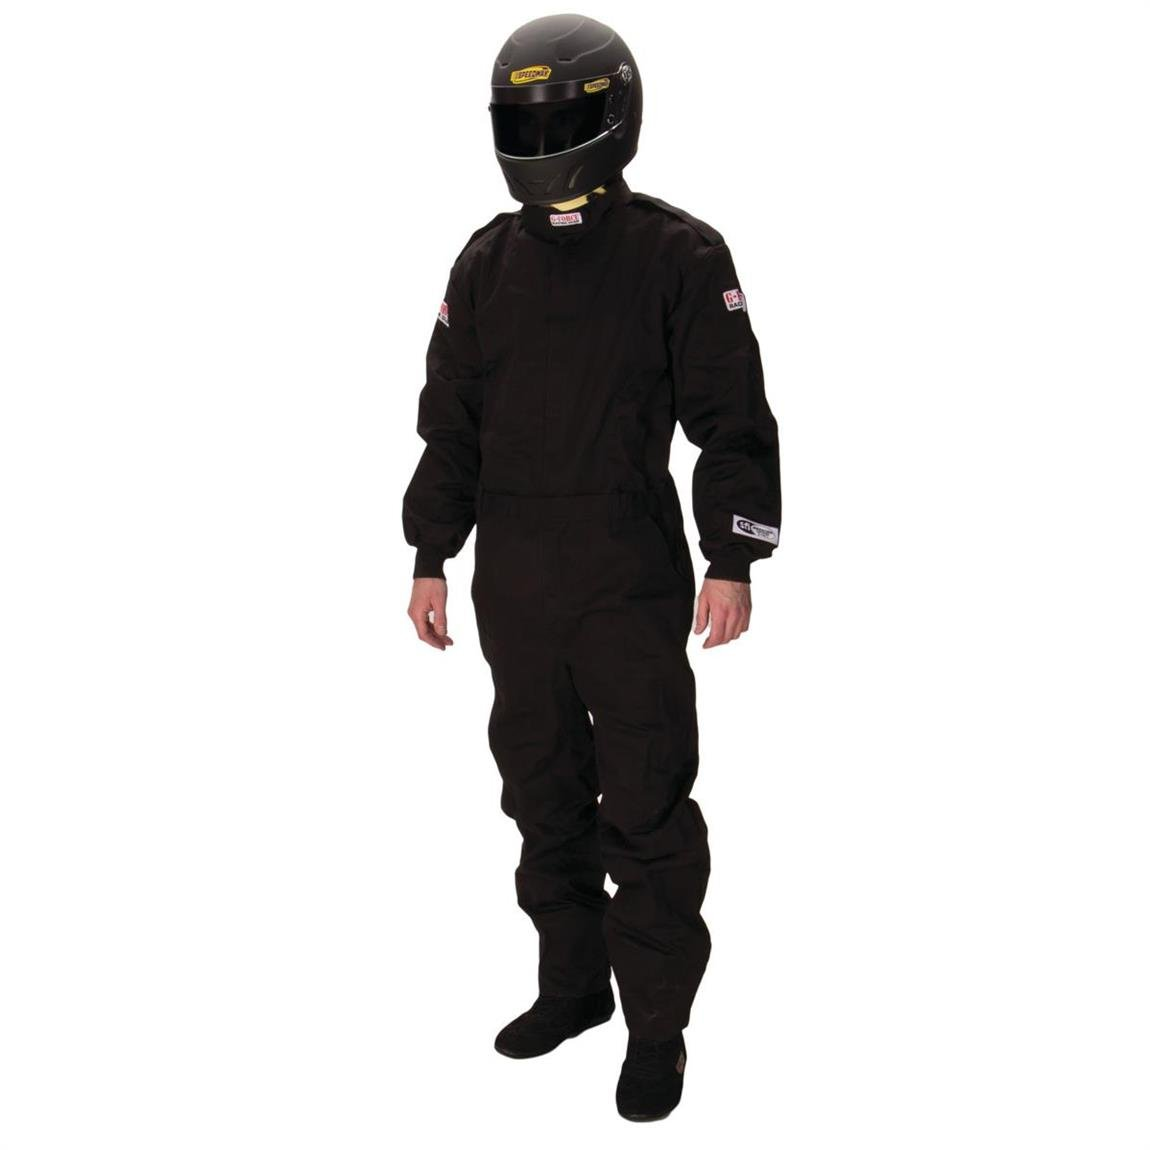 G-Force 4125LRGBK GF 125 Black Large Single Layer Racing Suit